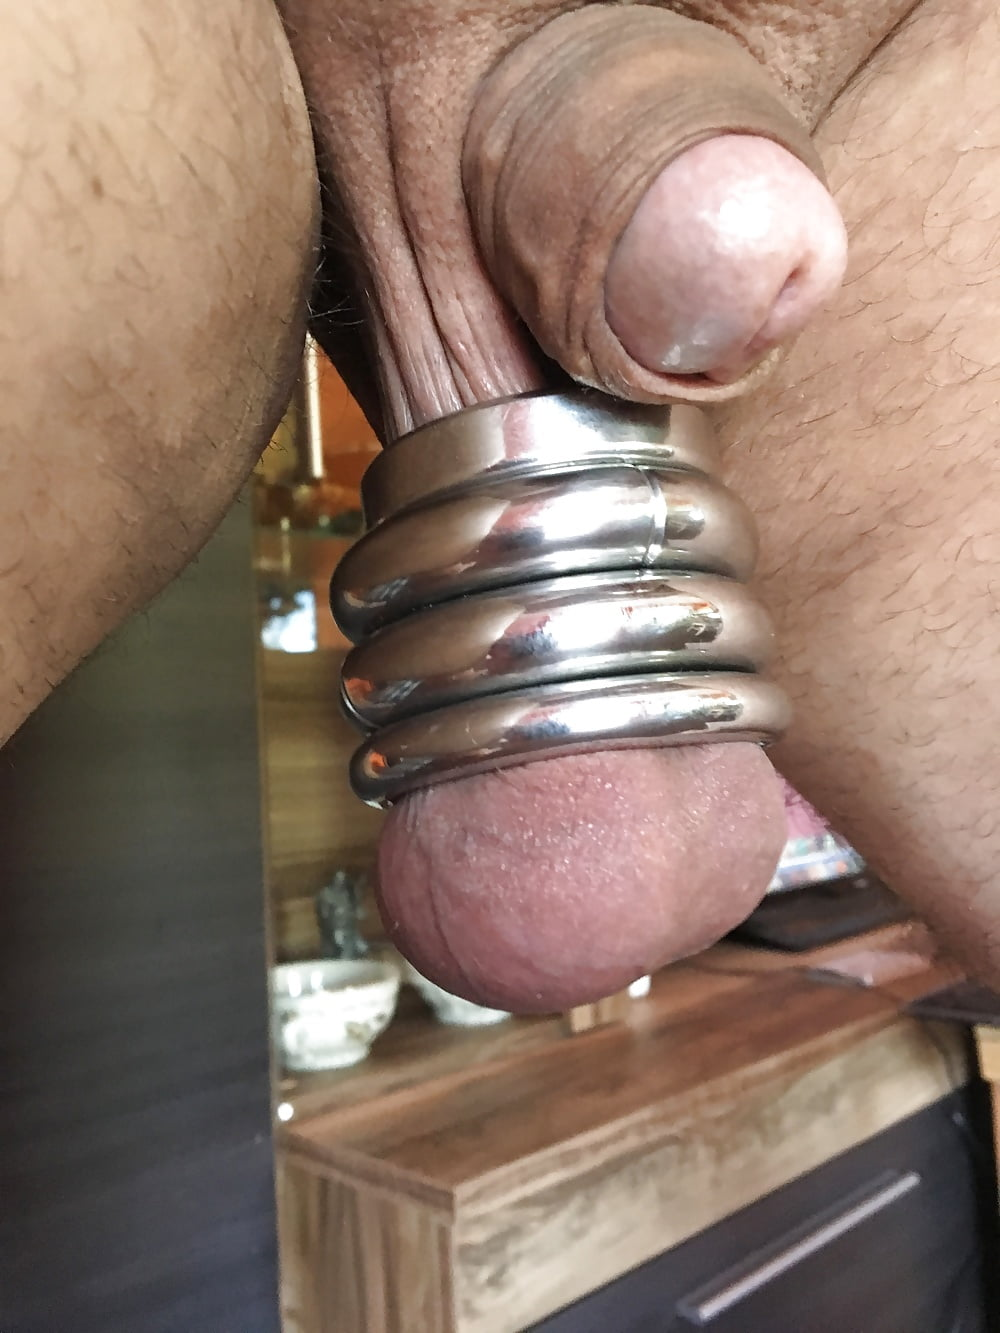 Balls Bouncing In Ball Stretcher